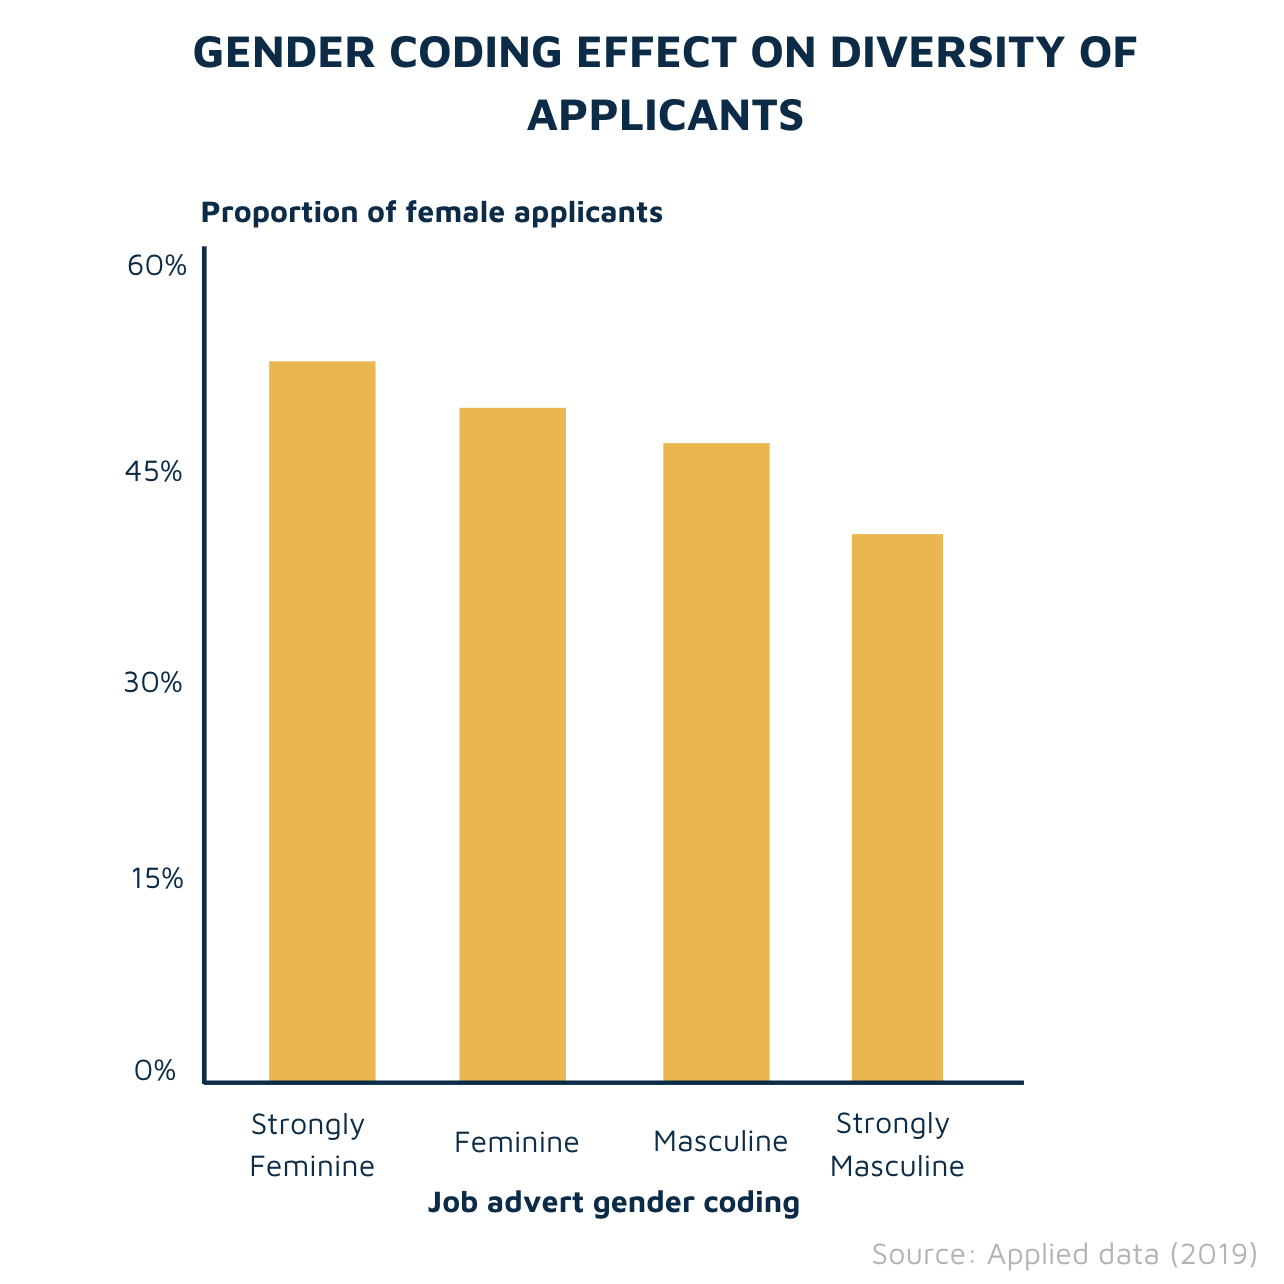 Gender coding effect on diversity of applications